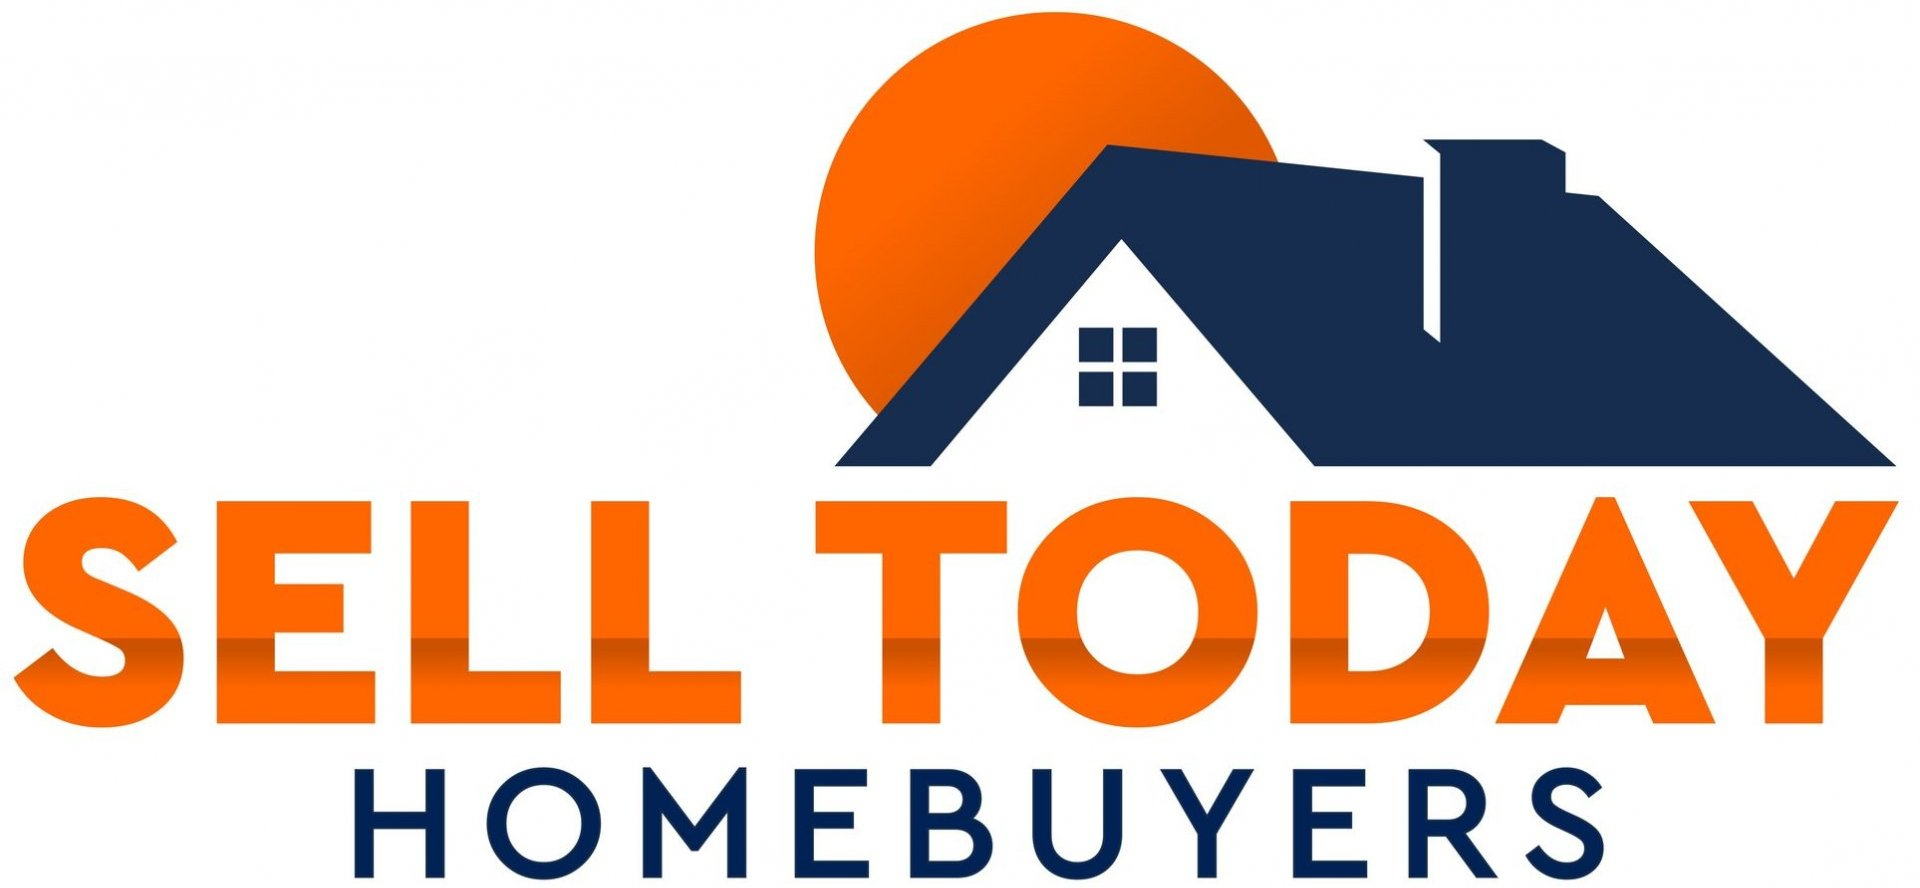 Sell Today Homebuyers logo